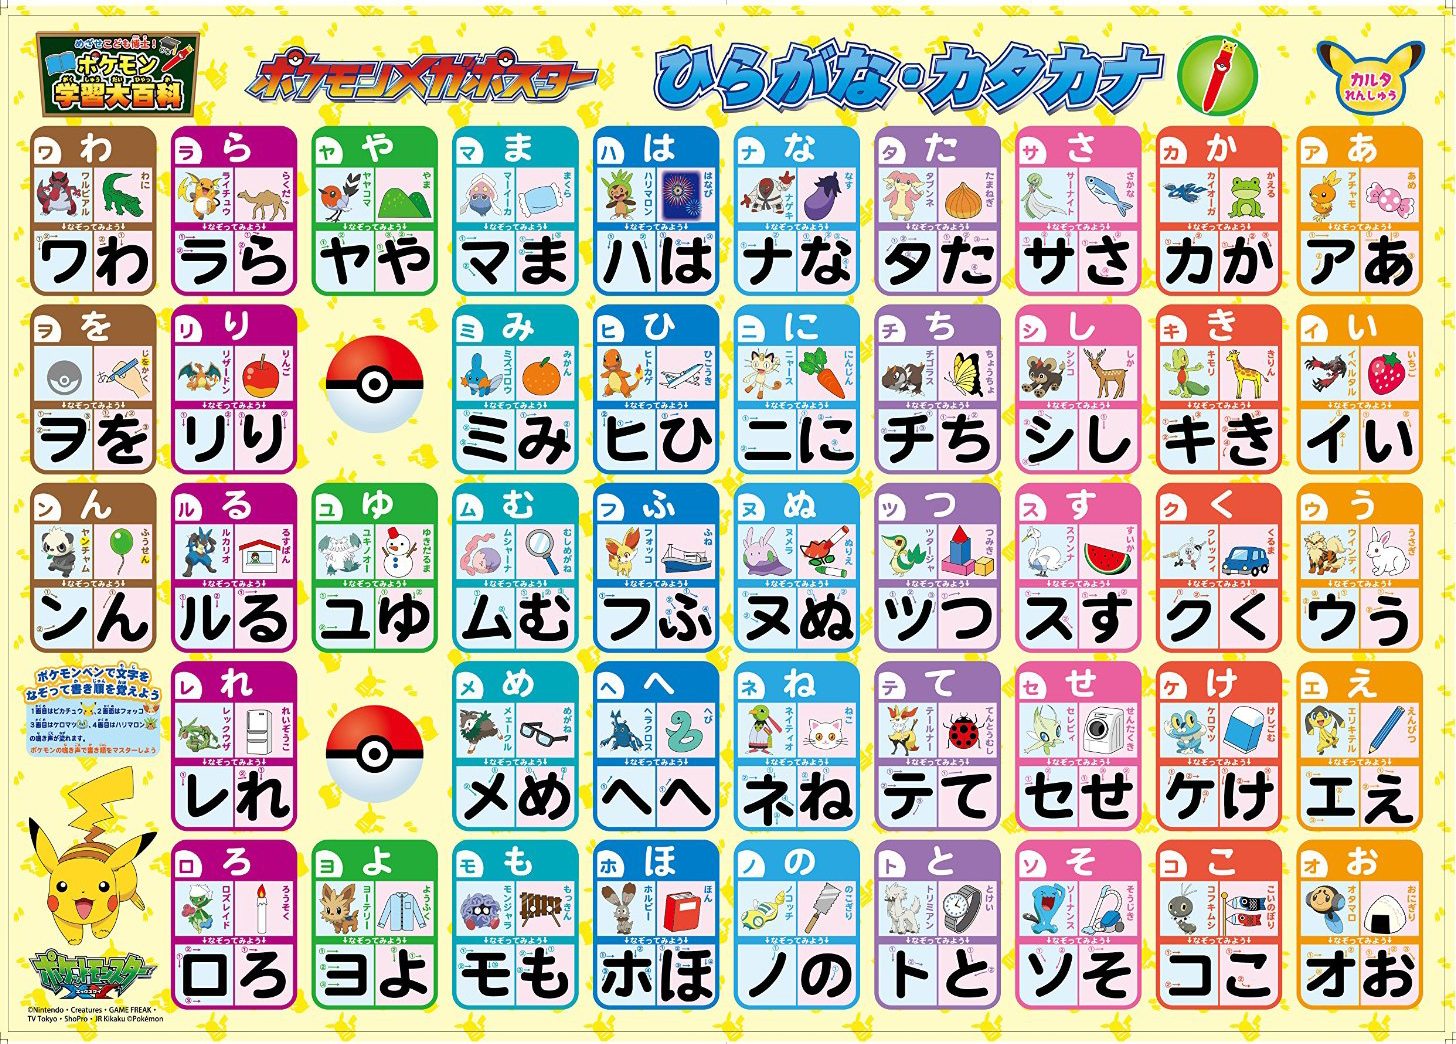 Japanese English Help With Translating Pokemon Names And Examples